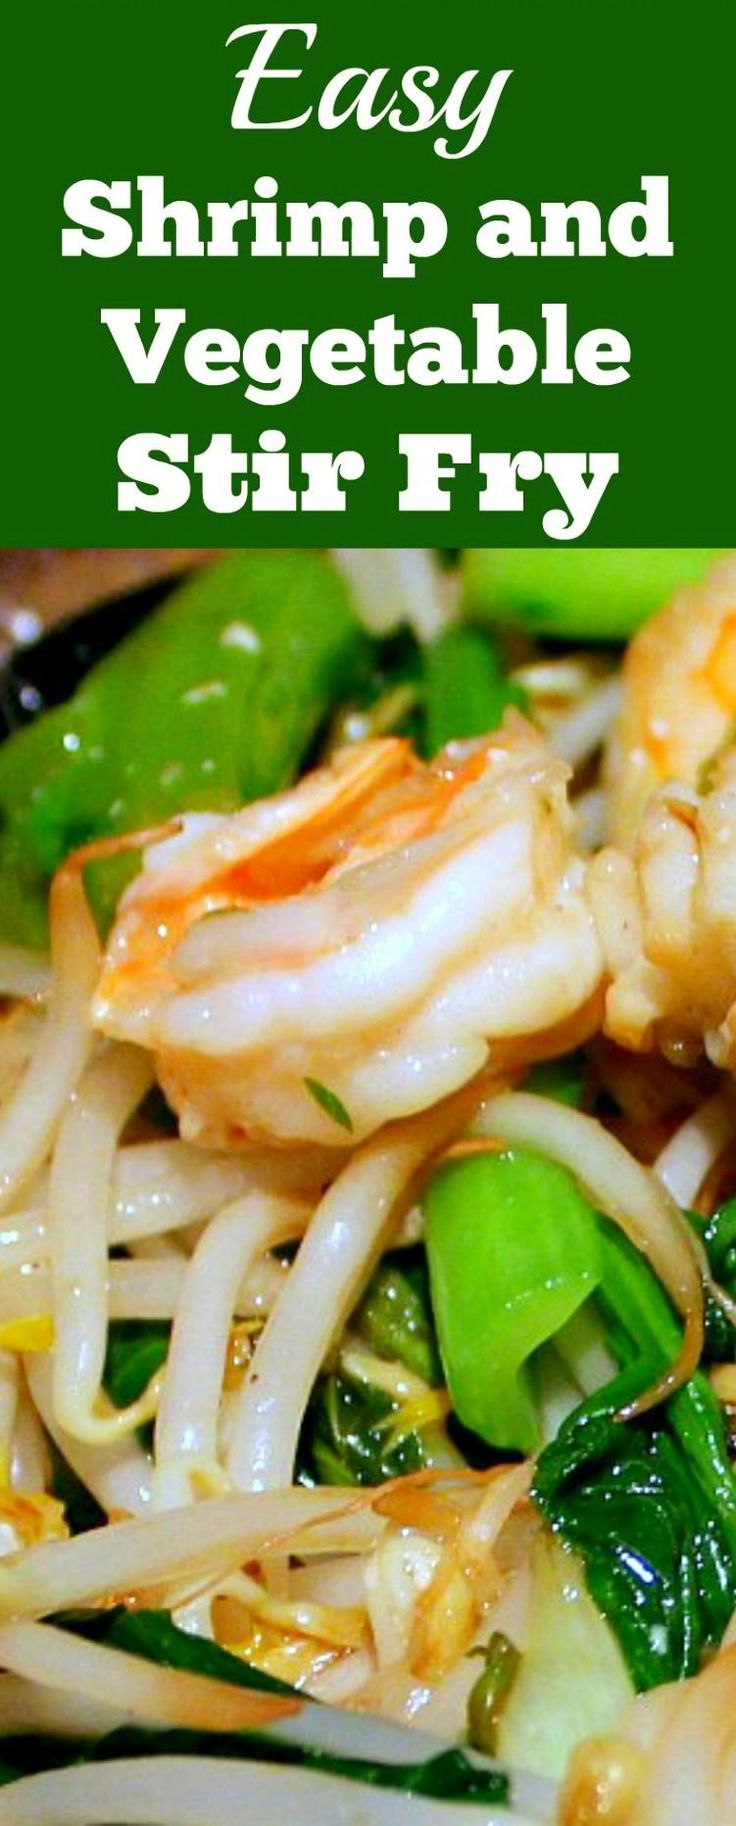 Easy Shrimp and Vegetable Stir Fry Additions of tofu, shrimp, and lovely Chinese vegatables quickly cooked in a delicious Asian sauce makes for a fantastic dinner | Lovefoodies.com #seafoodrecipes #chinesefoodrecipes